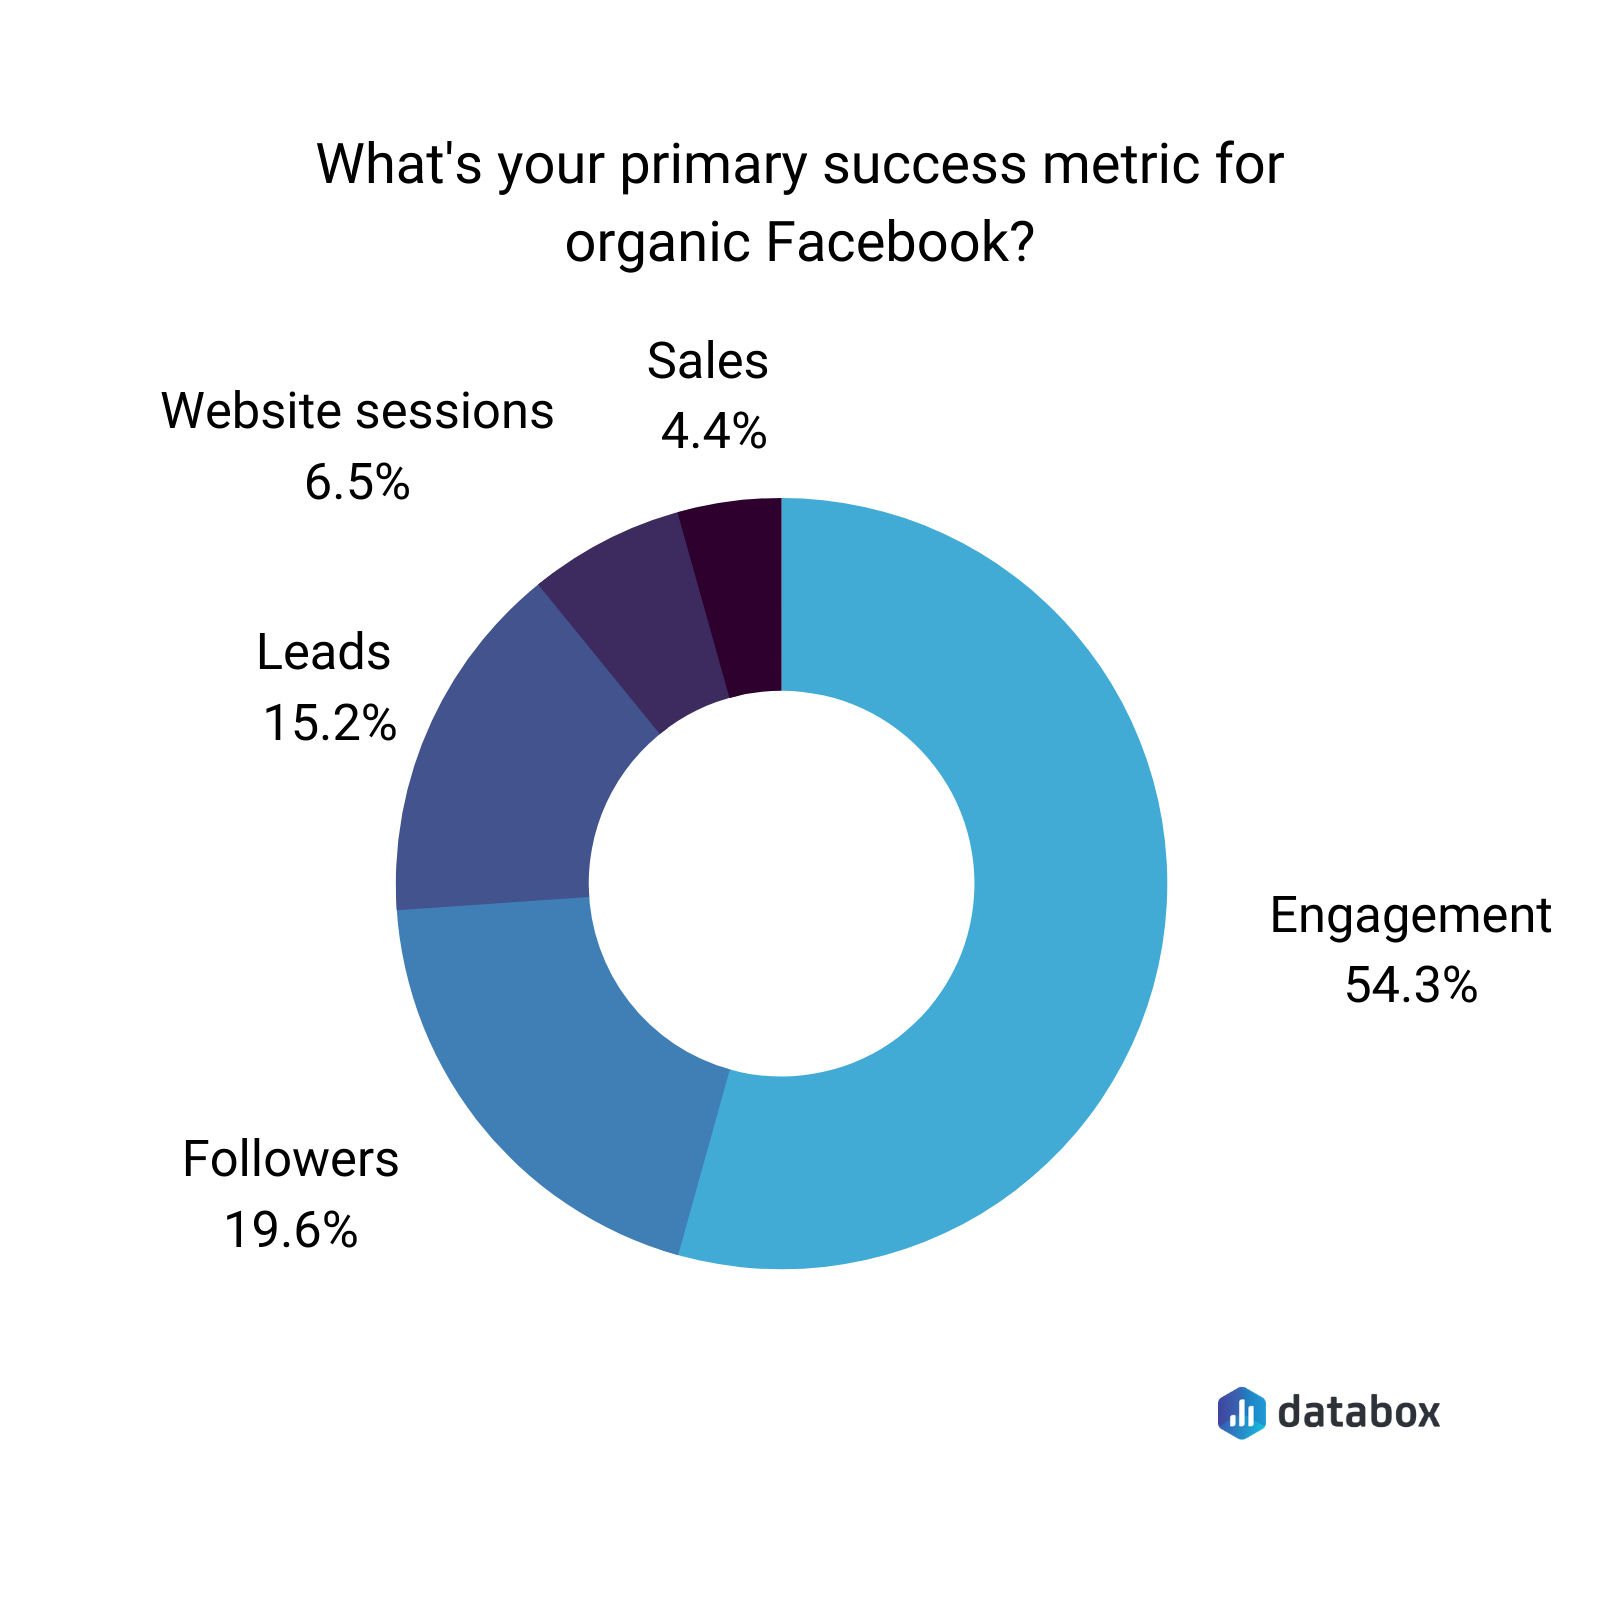 what's your primary success metric for organic Facebook?